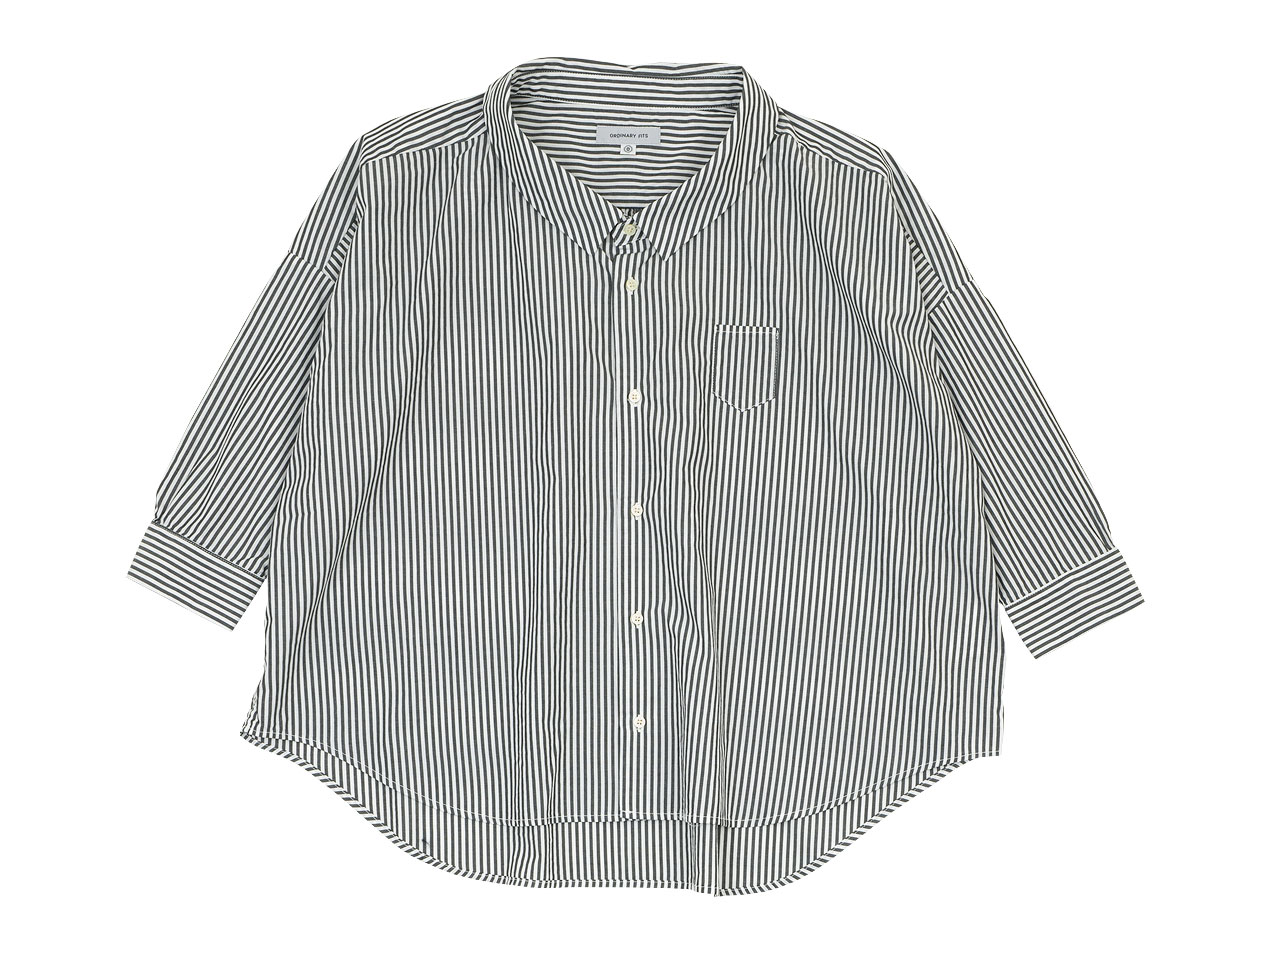 ordinary fits BARBER SHIRT / EDWARD STAND ONEPIECE